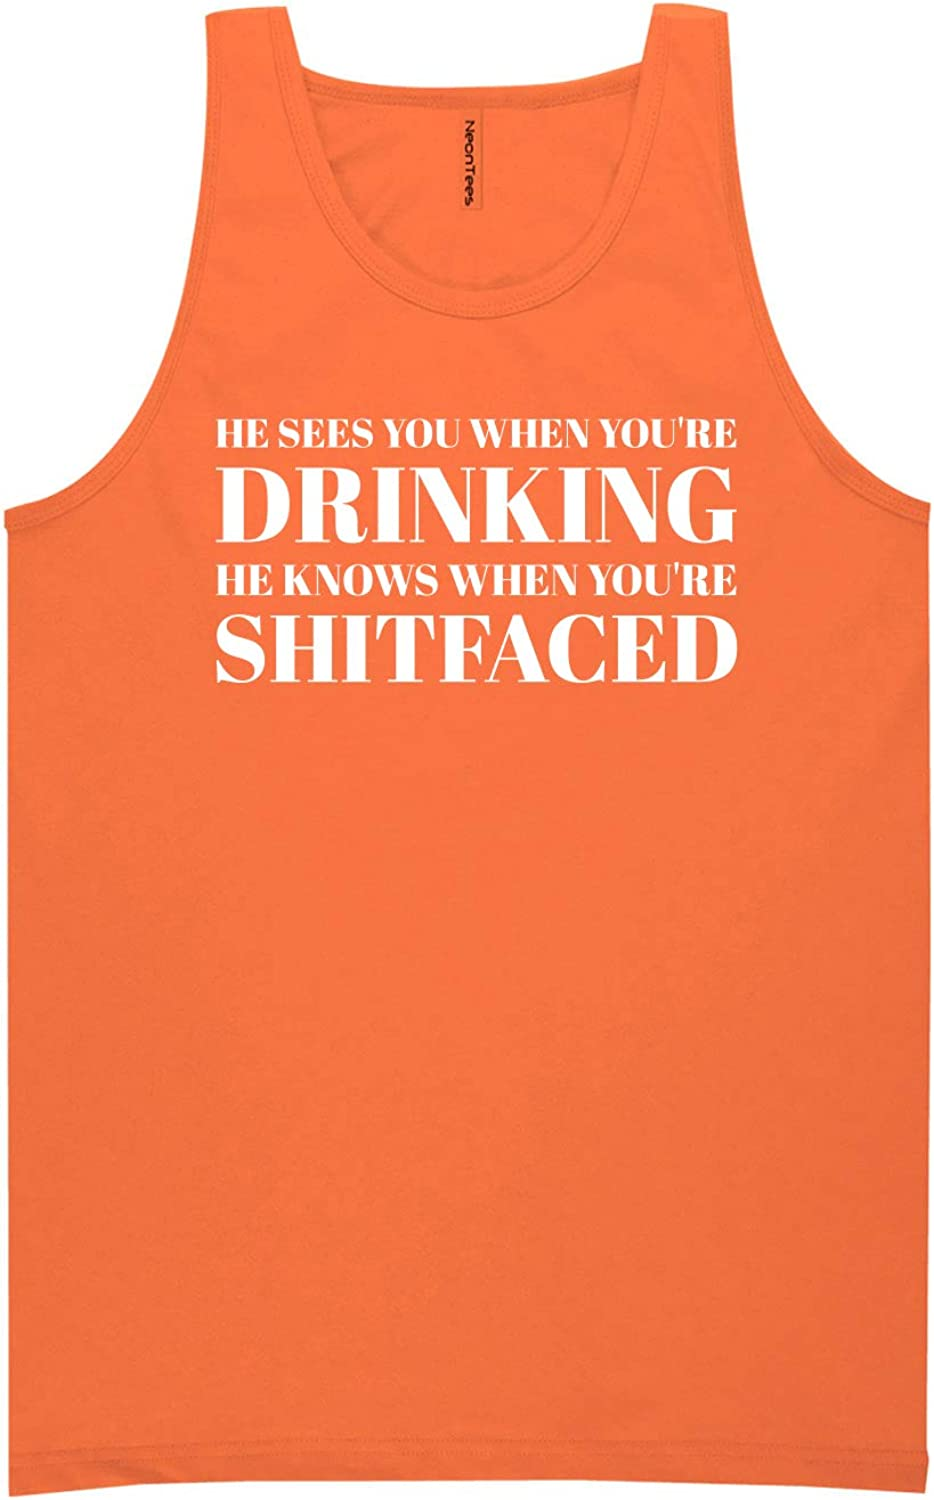 He Sees You When You're Drinking Neon Orange Tank Top - XX-Large